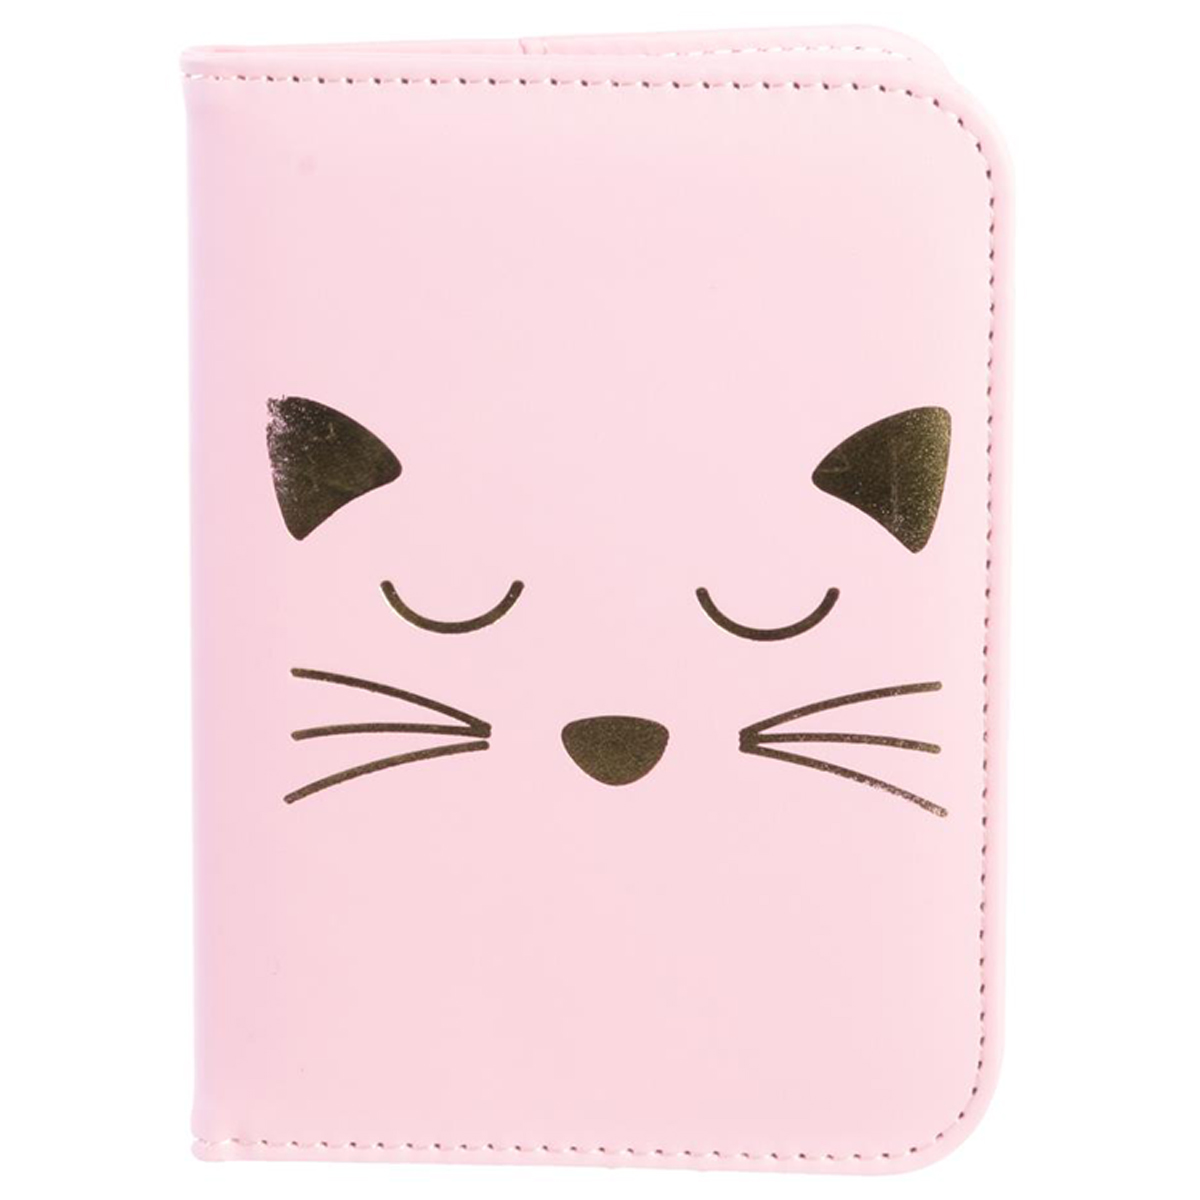 Etui passeport \'Chats\' rose - 14x10 cm - [Q5415]